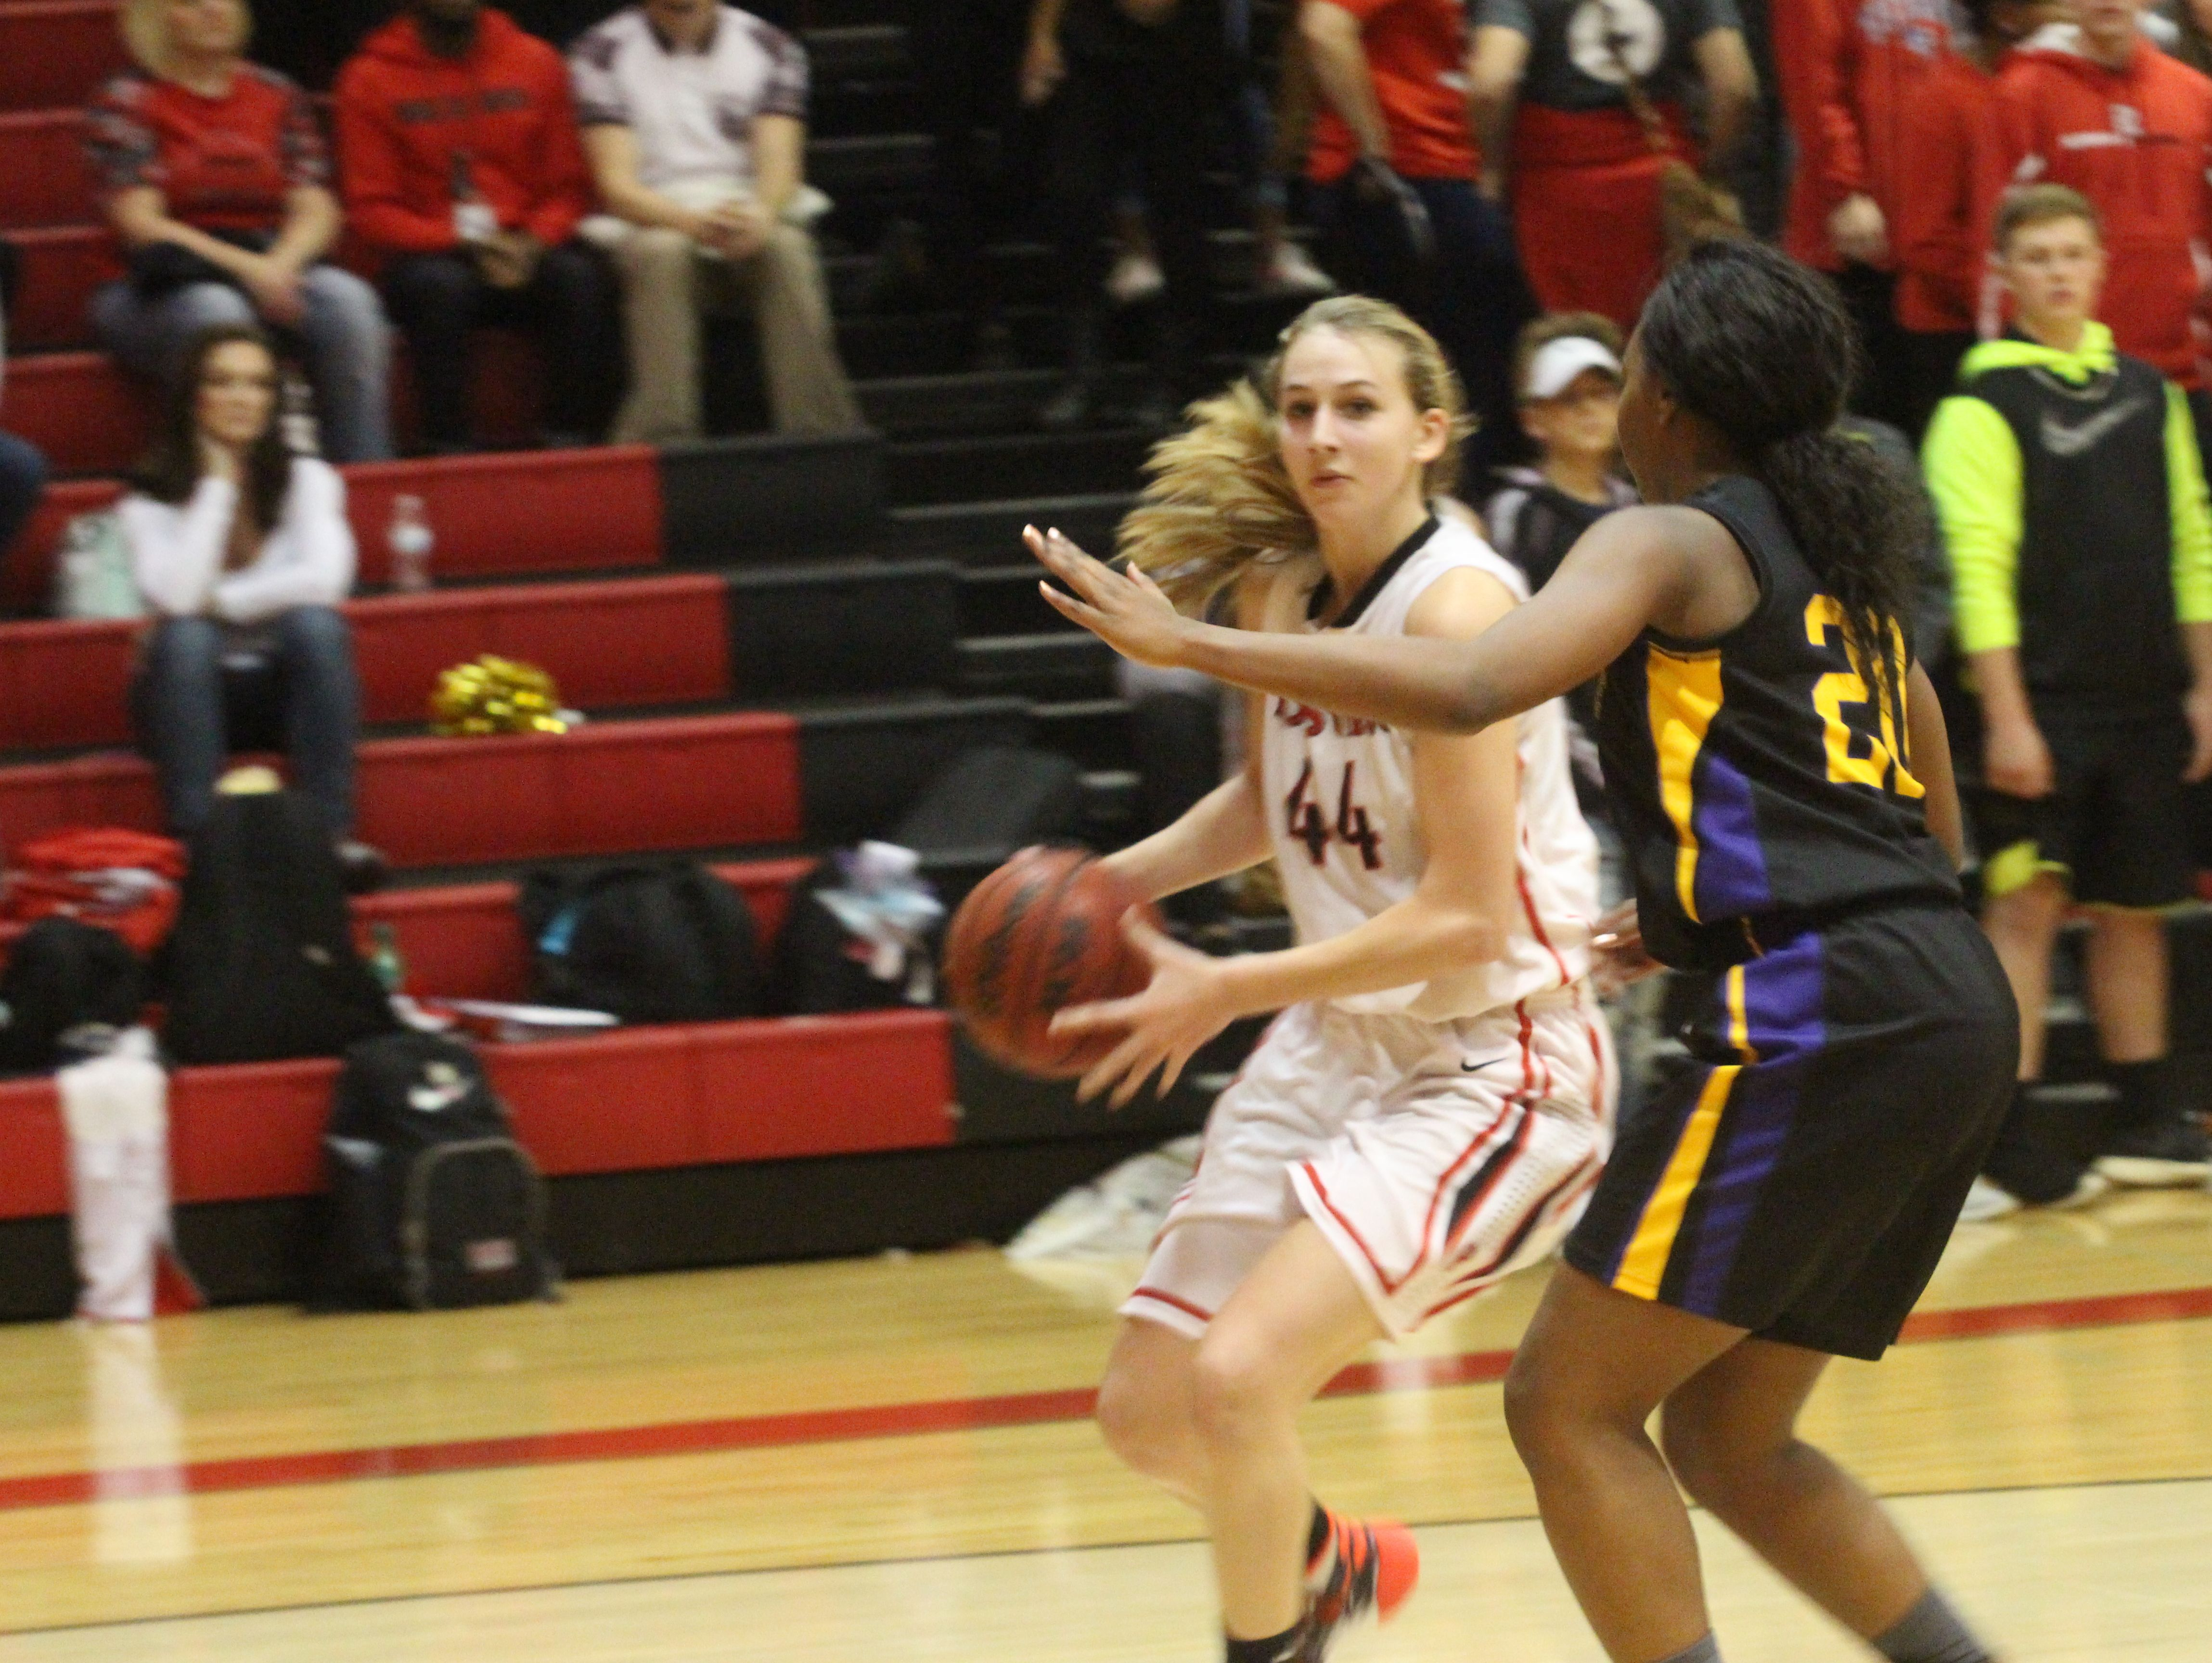 Rossview's Mickey Head (44) looks for room around Clarksville High's Prasha Fair (20) during the second quarter of their District 10 game Tuesday at Rossview High School.